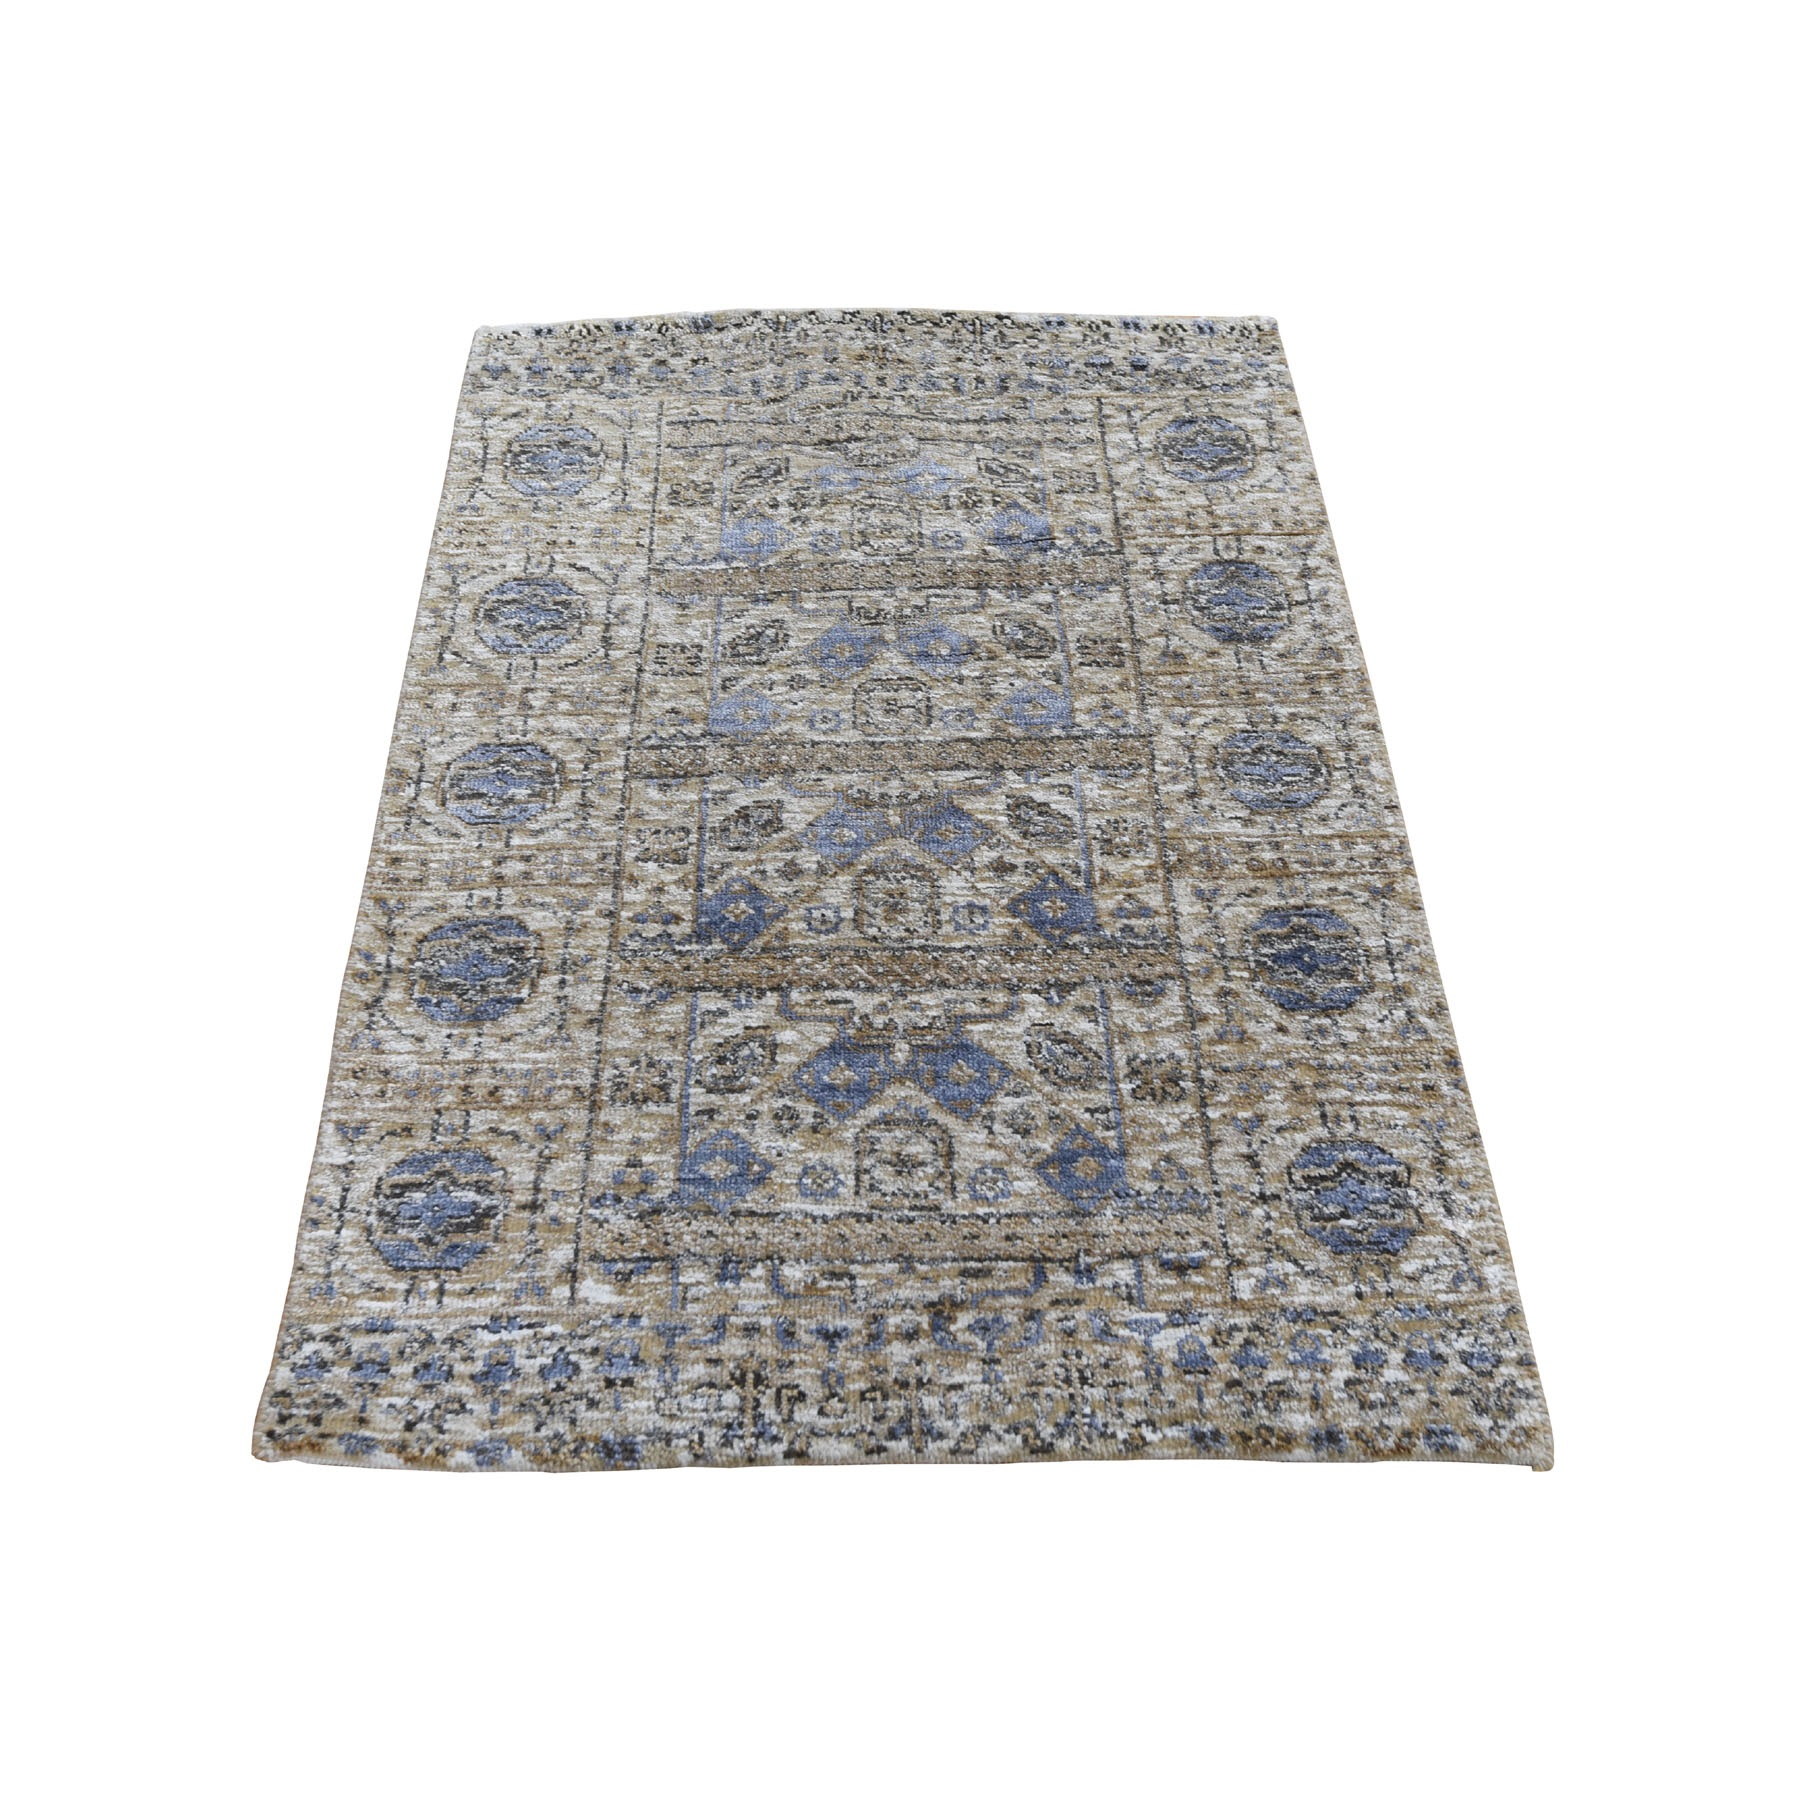 """2'2""""x3'1"""" Sampler Silver Silk With Textured wool Mamluk Design Hand knotted Oriental Rug"""